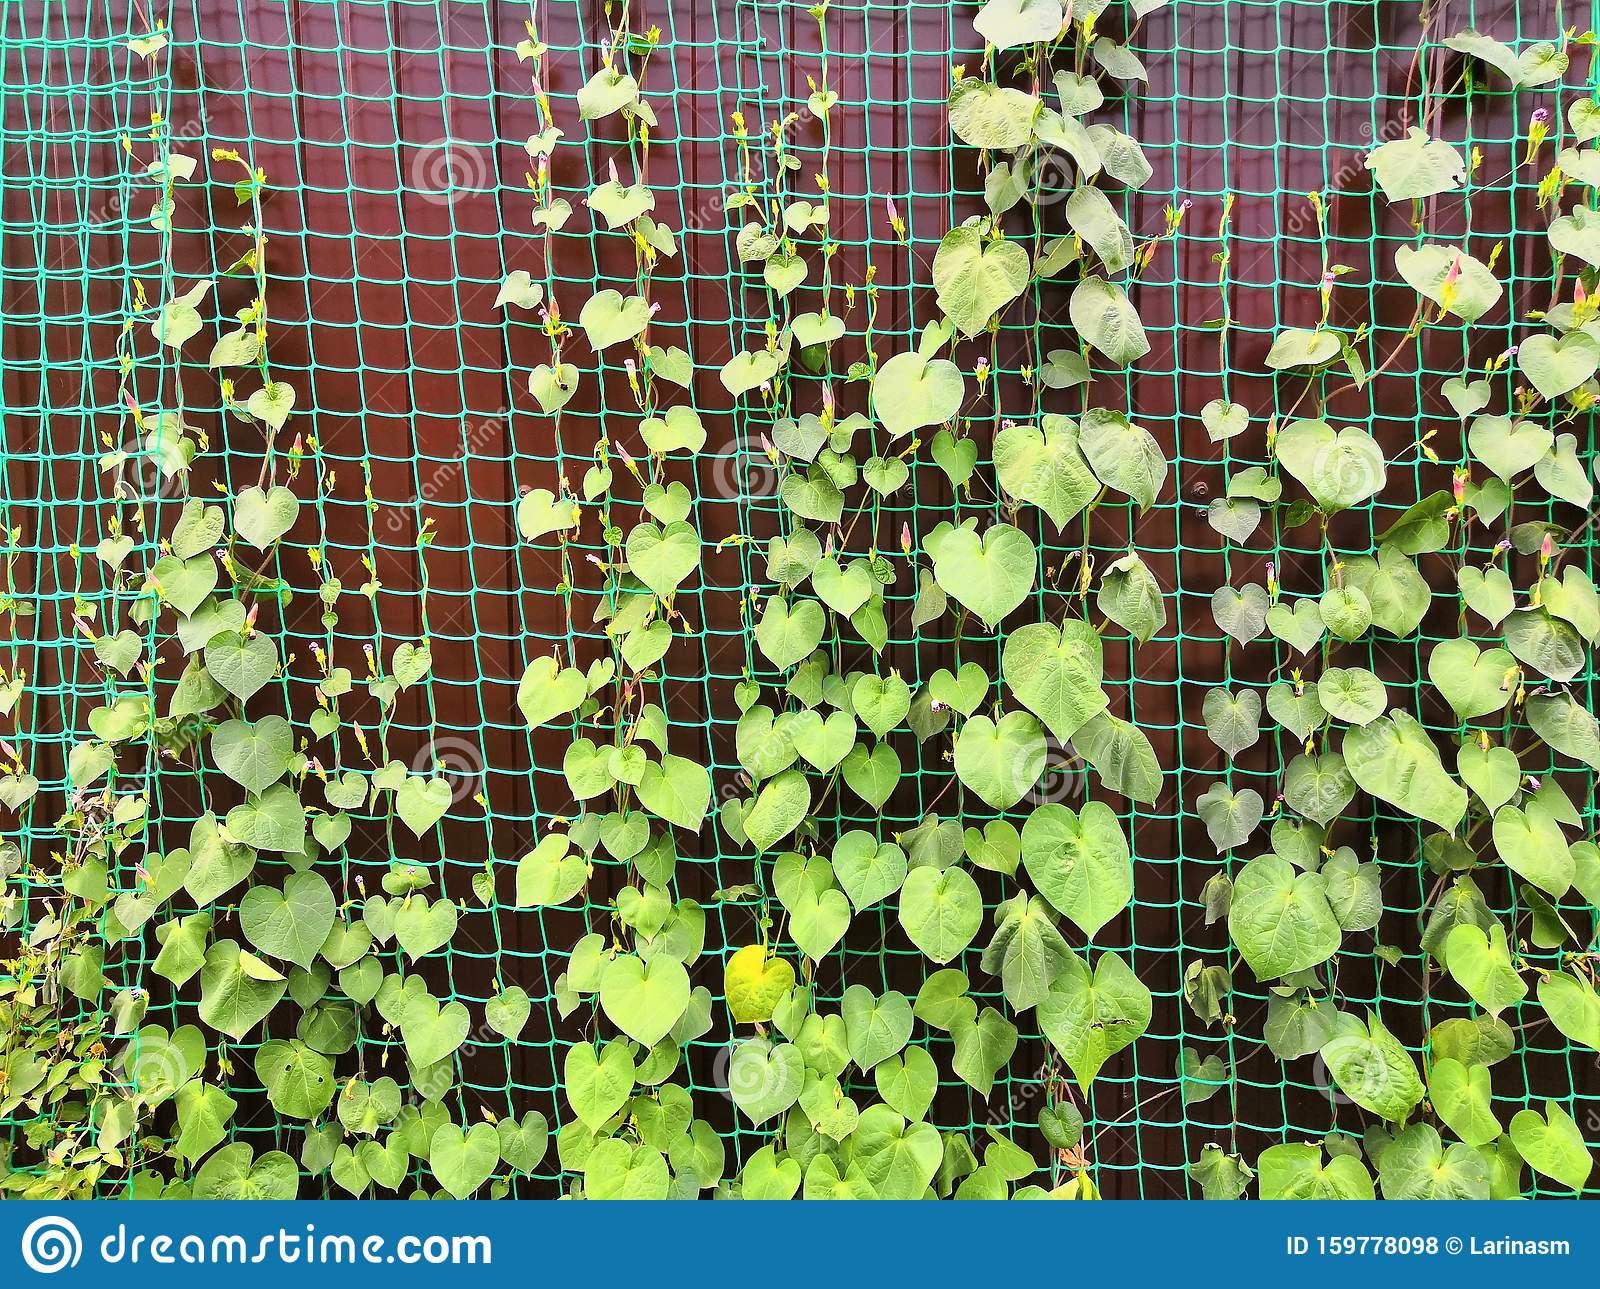 Green Climbing Plants With Leaves On Grid And Fence Background